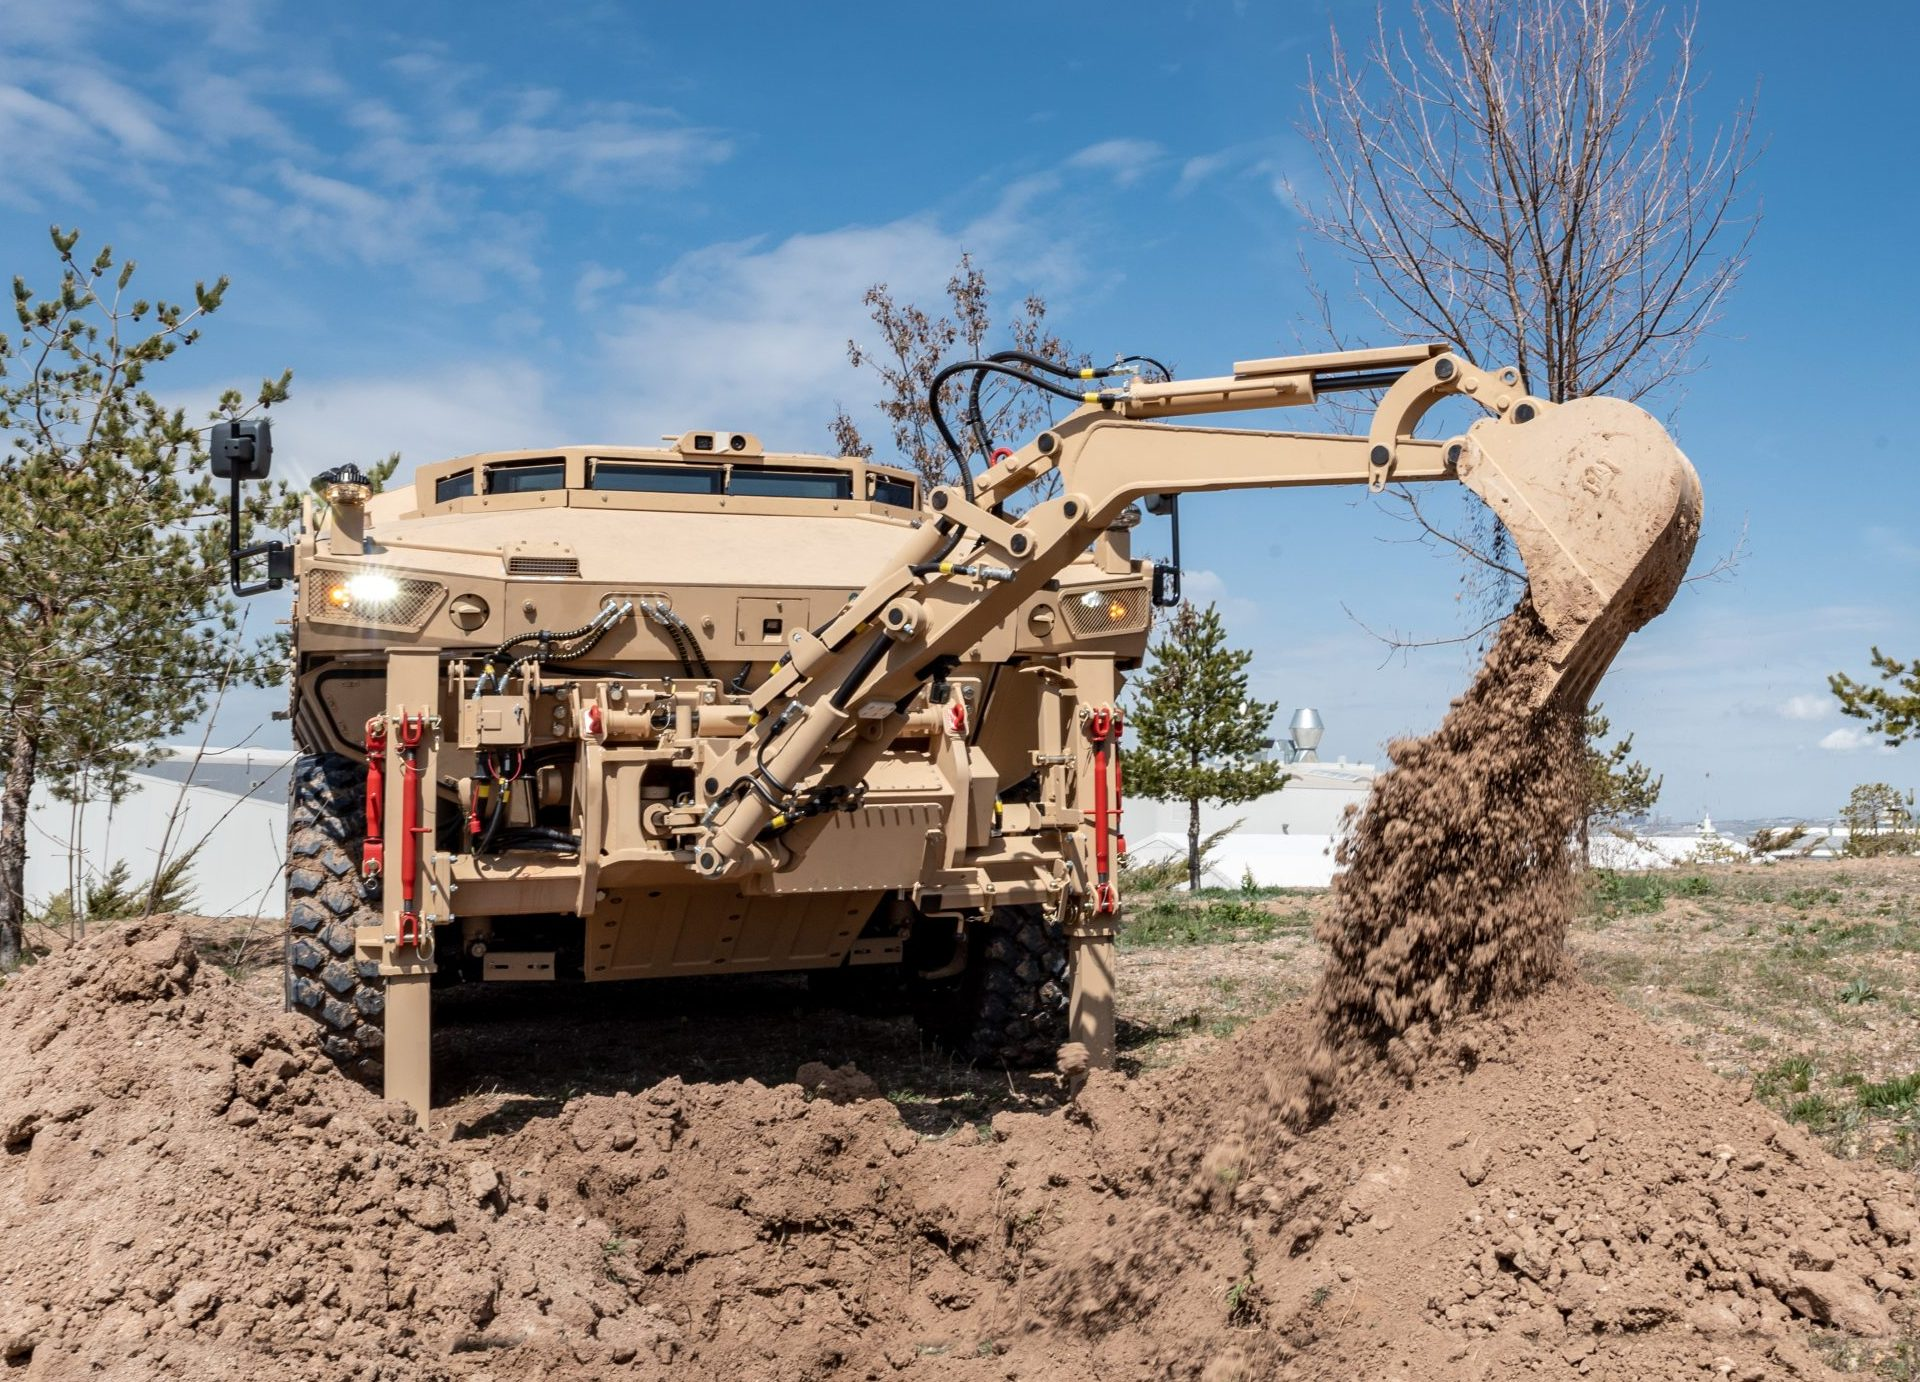 The Excavator Manipulator Arm is positioned to dig, demolish, remove obstacles and fill trenches.